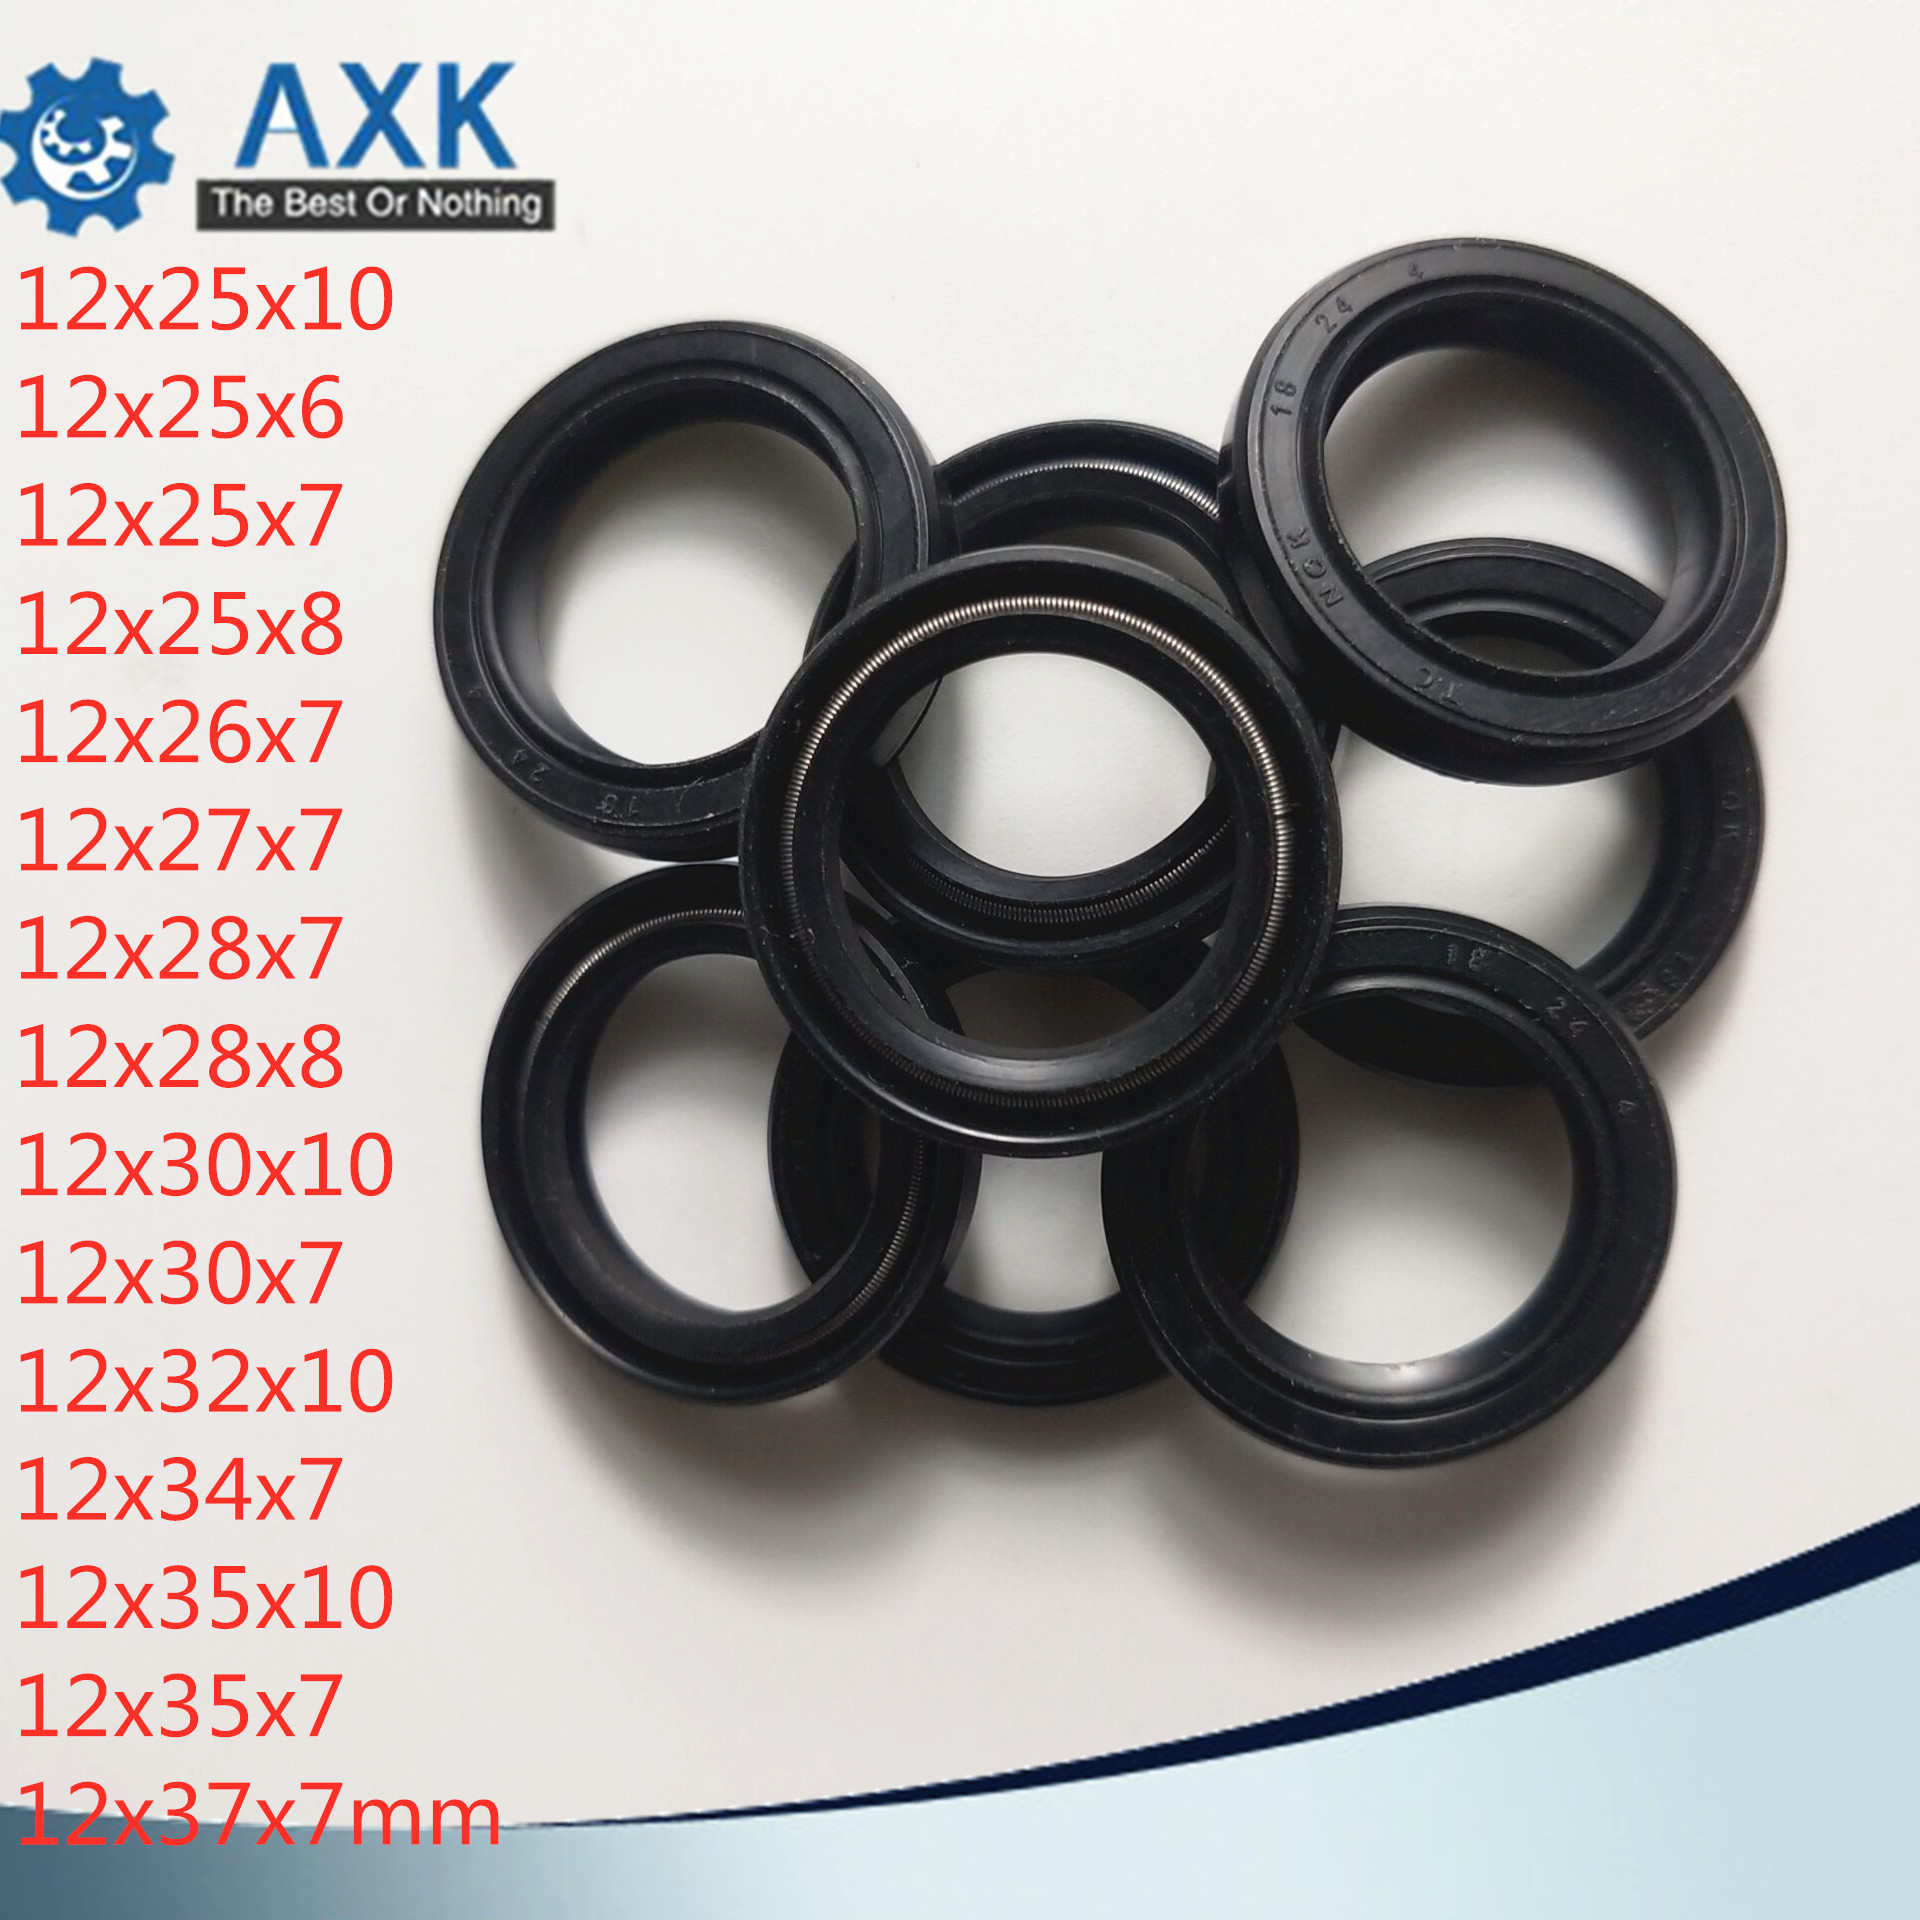 34 x 52 x 10 mm TC Oil Seal